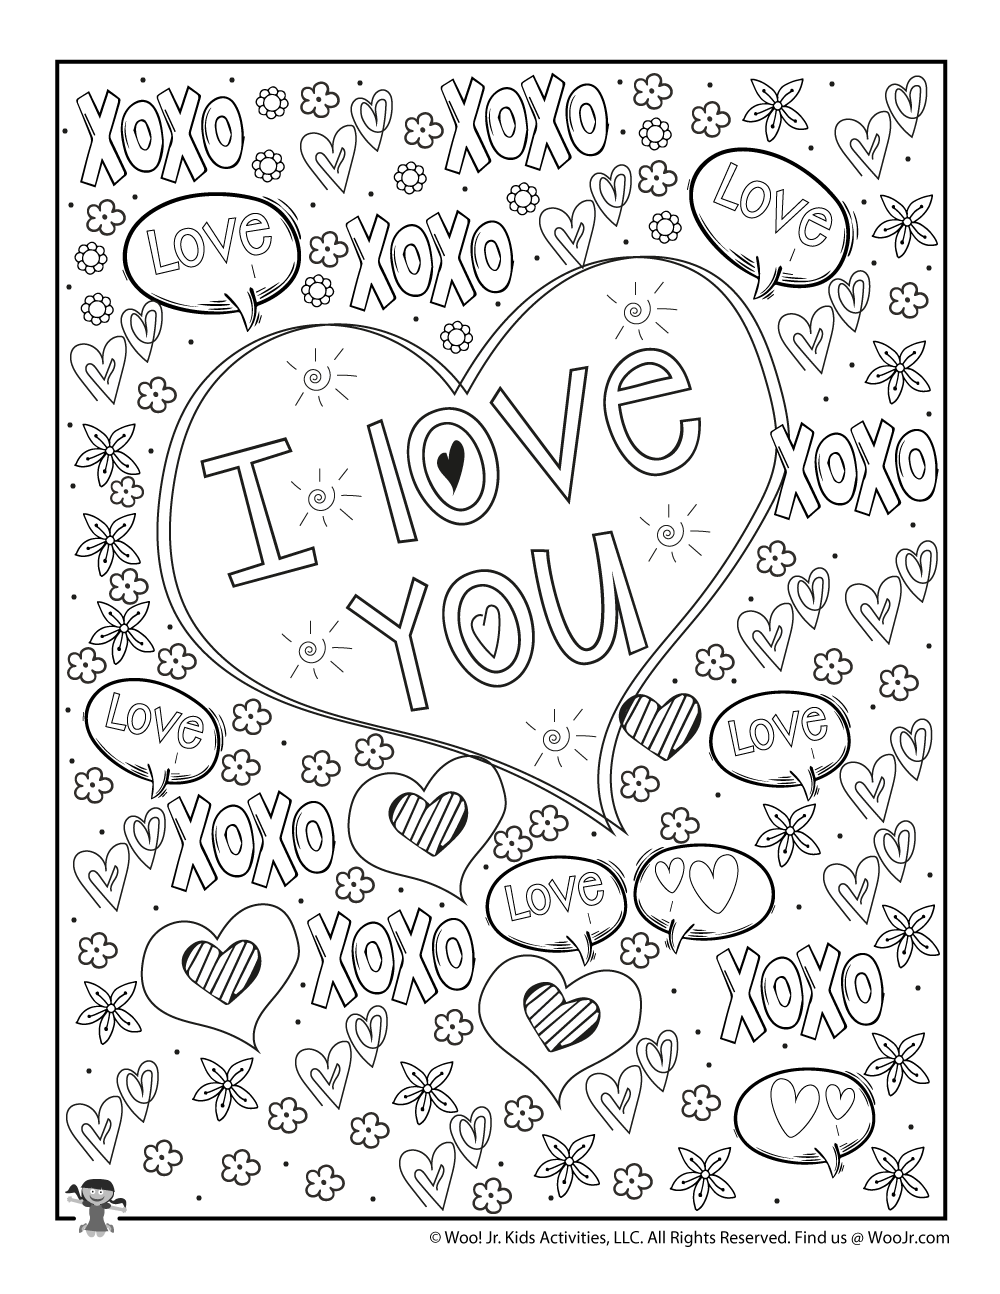 FREE Valentine's Day Coloring Pages for Grown Ups - Almost Supermom | 1294x1000